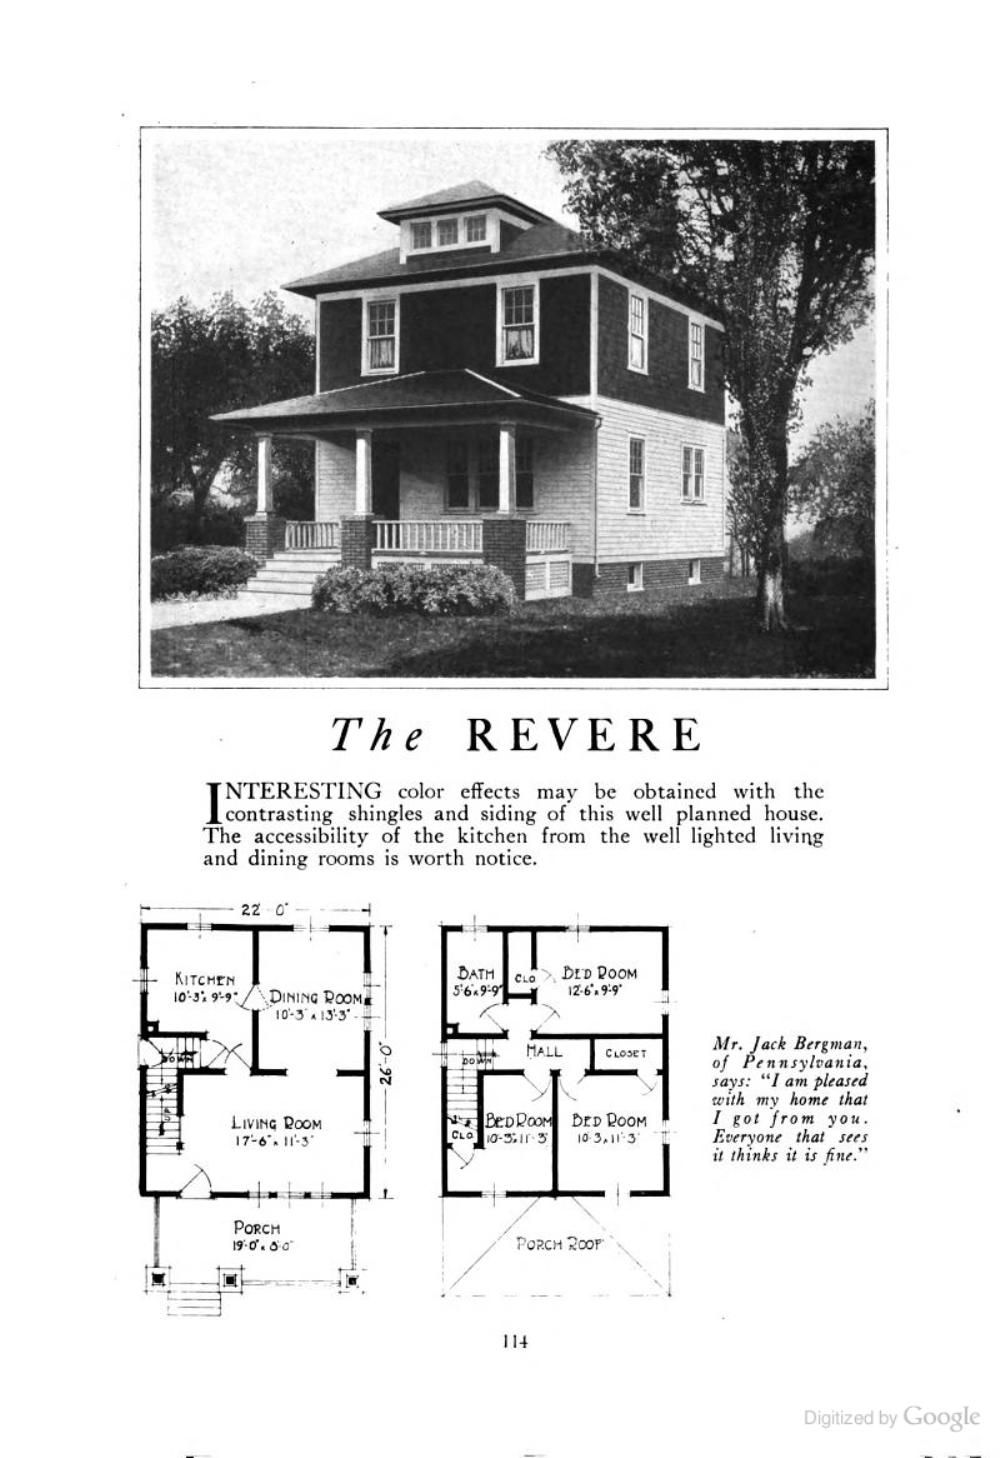 The Revere An American Foursquare Kit House House Plan Homes